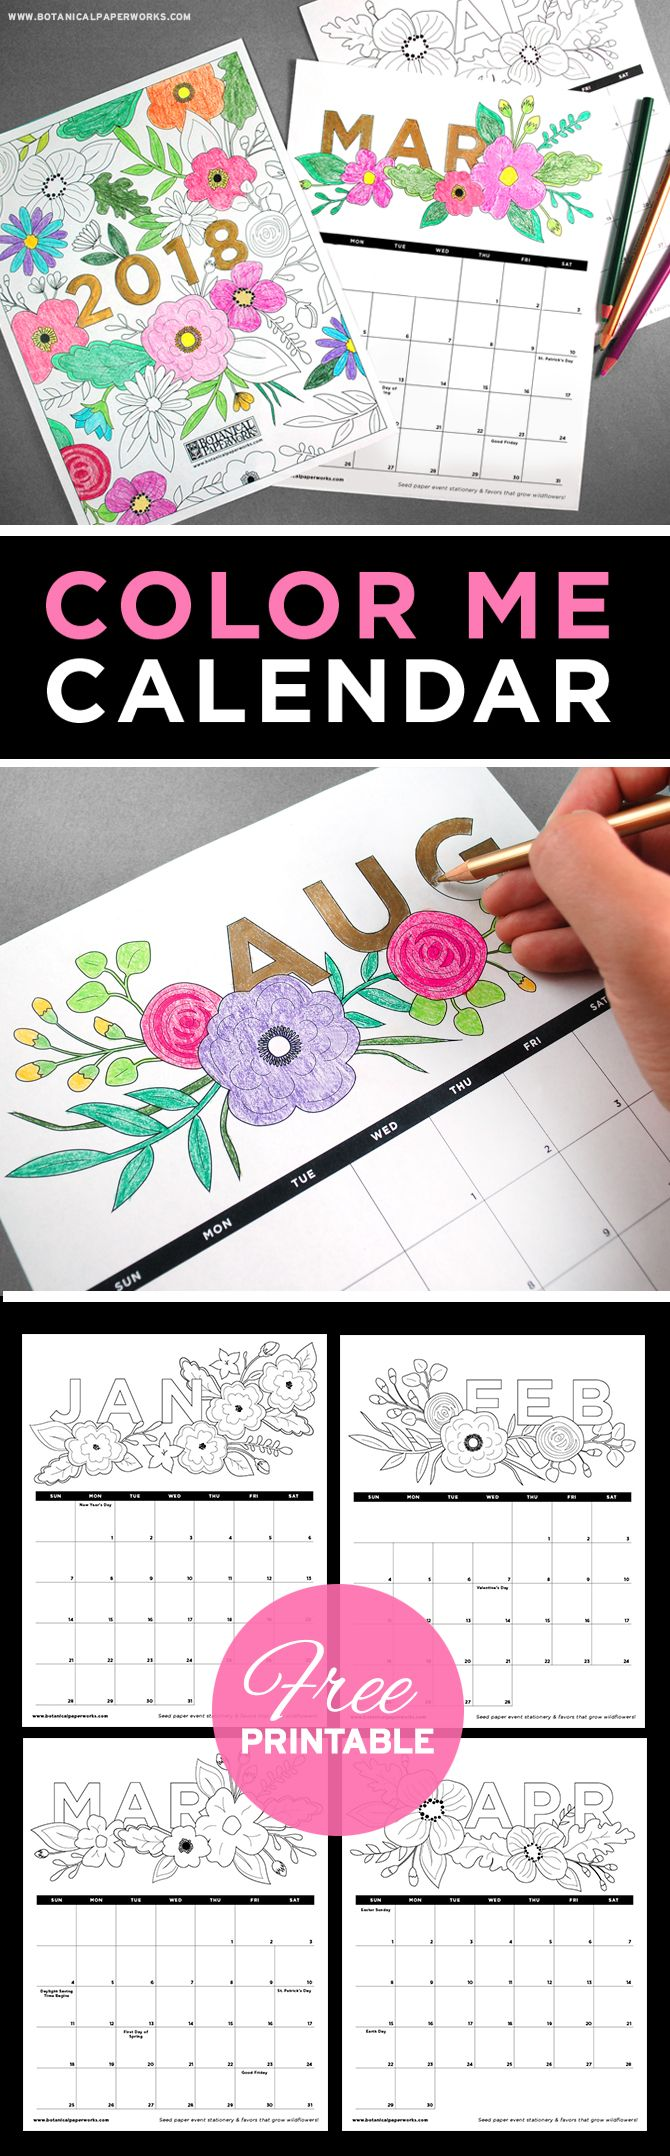 This Fun Free Printable Adult Coloring Book Calendar Is Filled With Floral Illustrations That Are Just